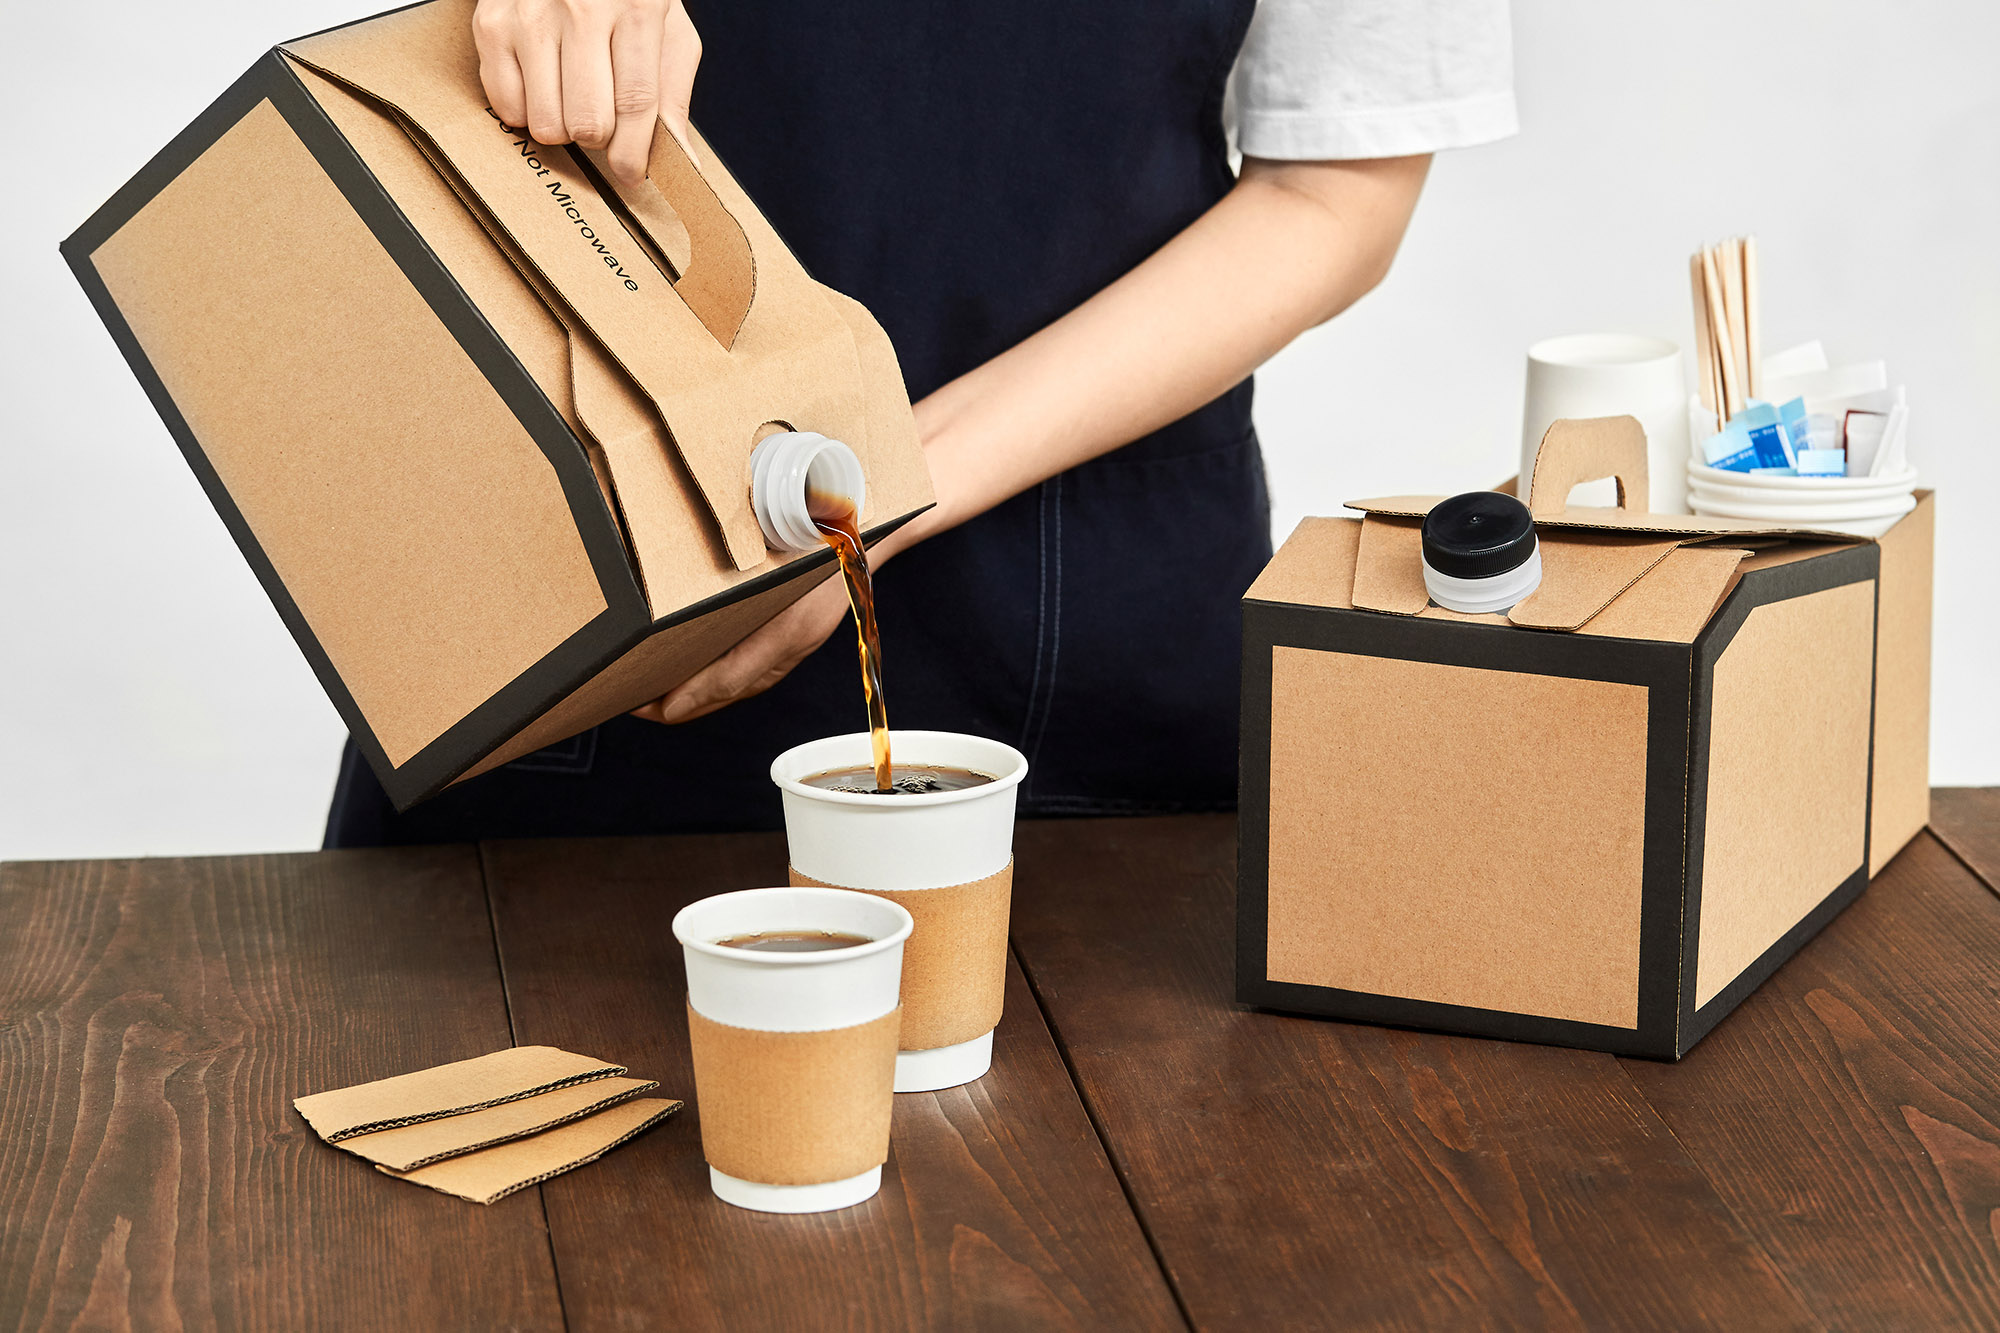 Hot Drink Sleeve & Beverage On The Move